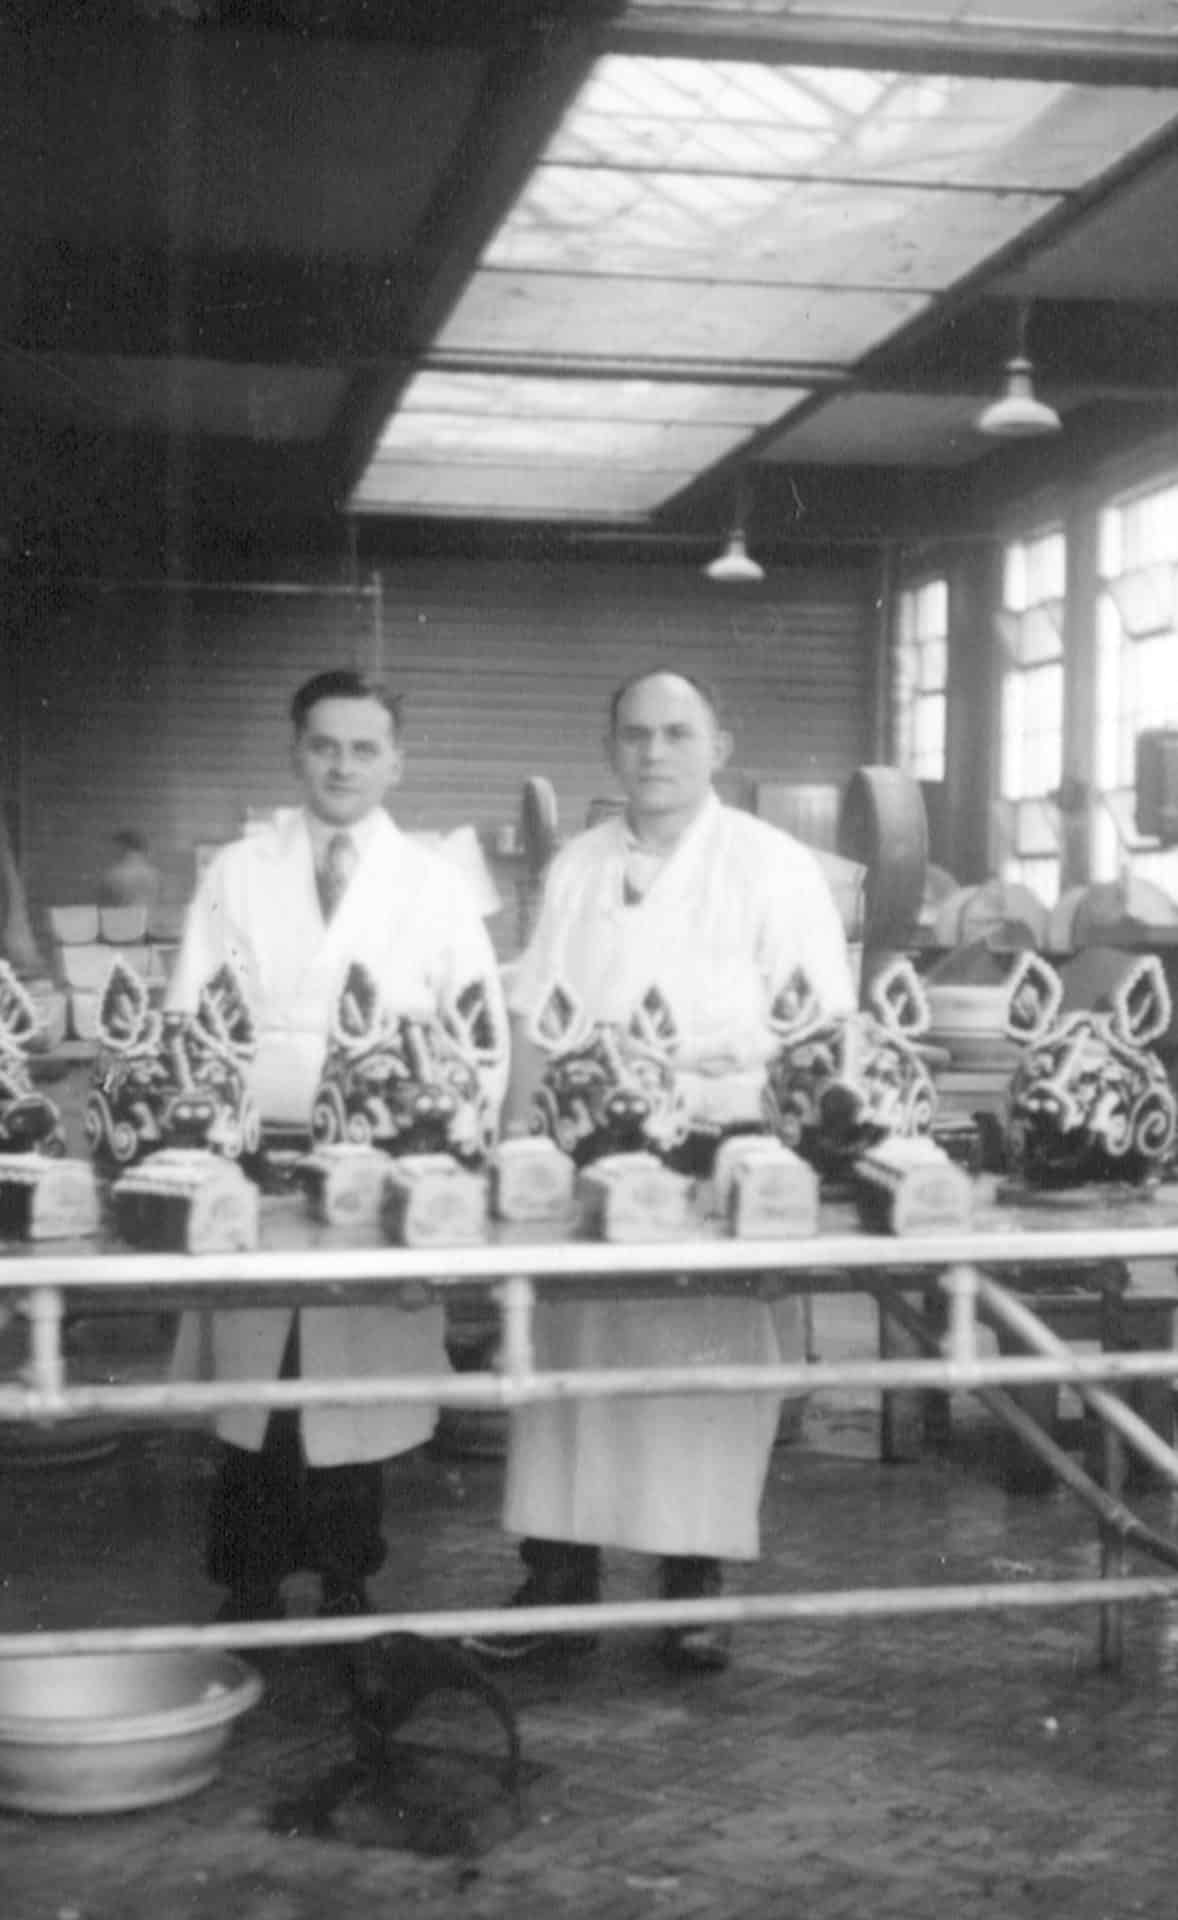 Preparing pigs heads for the coronation of Queen Elizabeth, Brierley Hill, 1953.